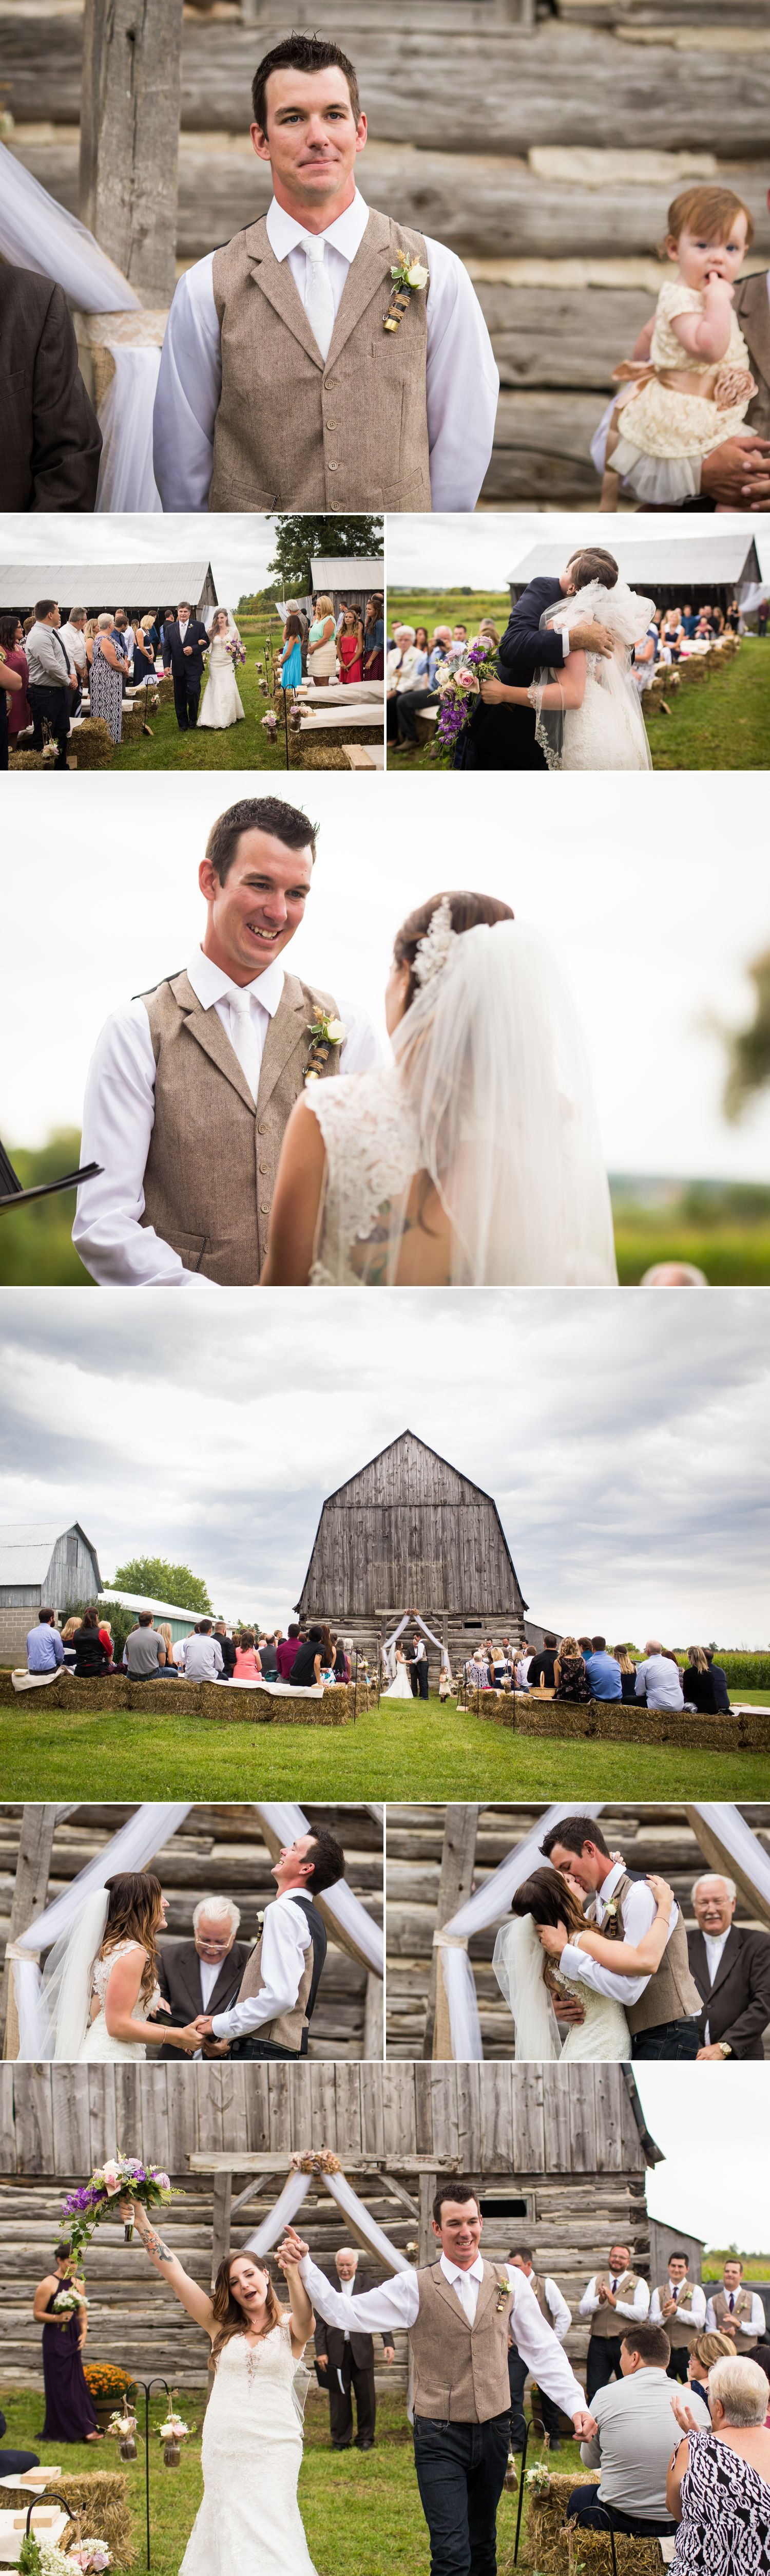 A wedding ceremony taking place in front of the couples renovated rustic barn